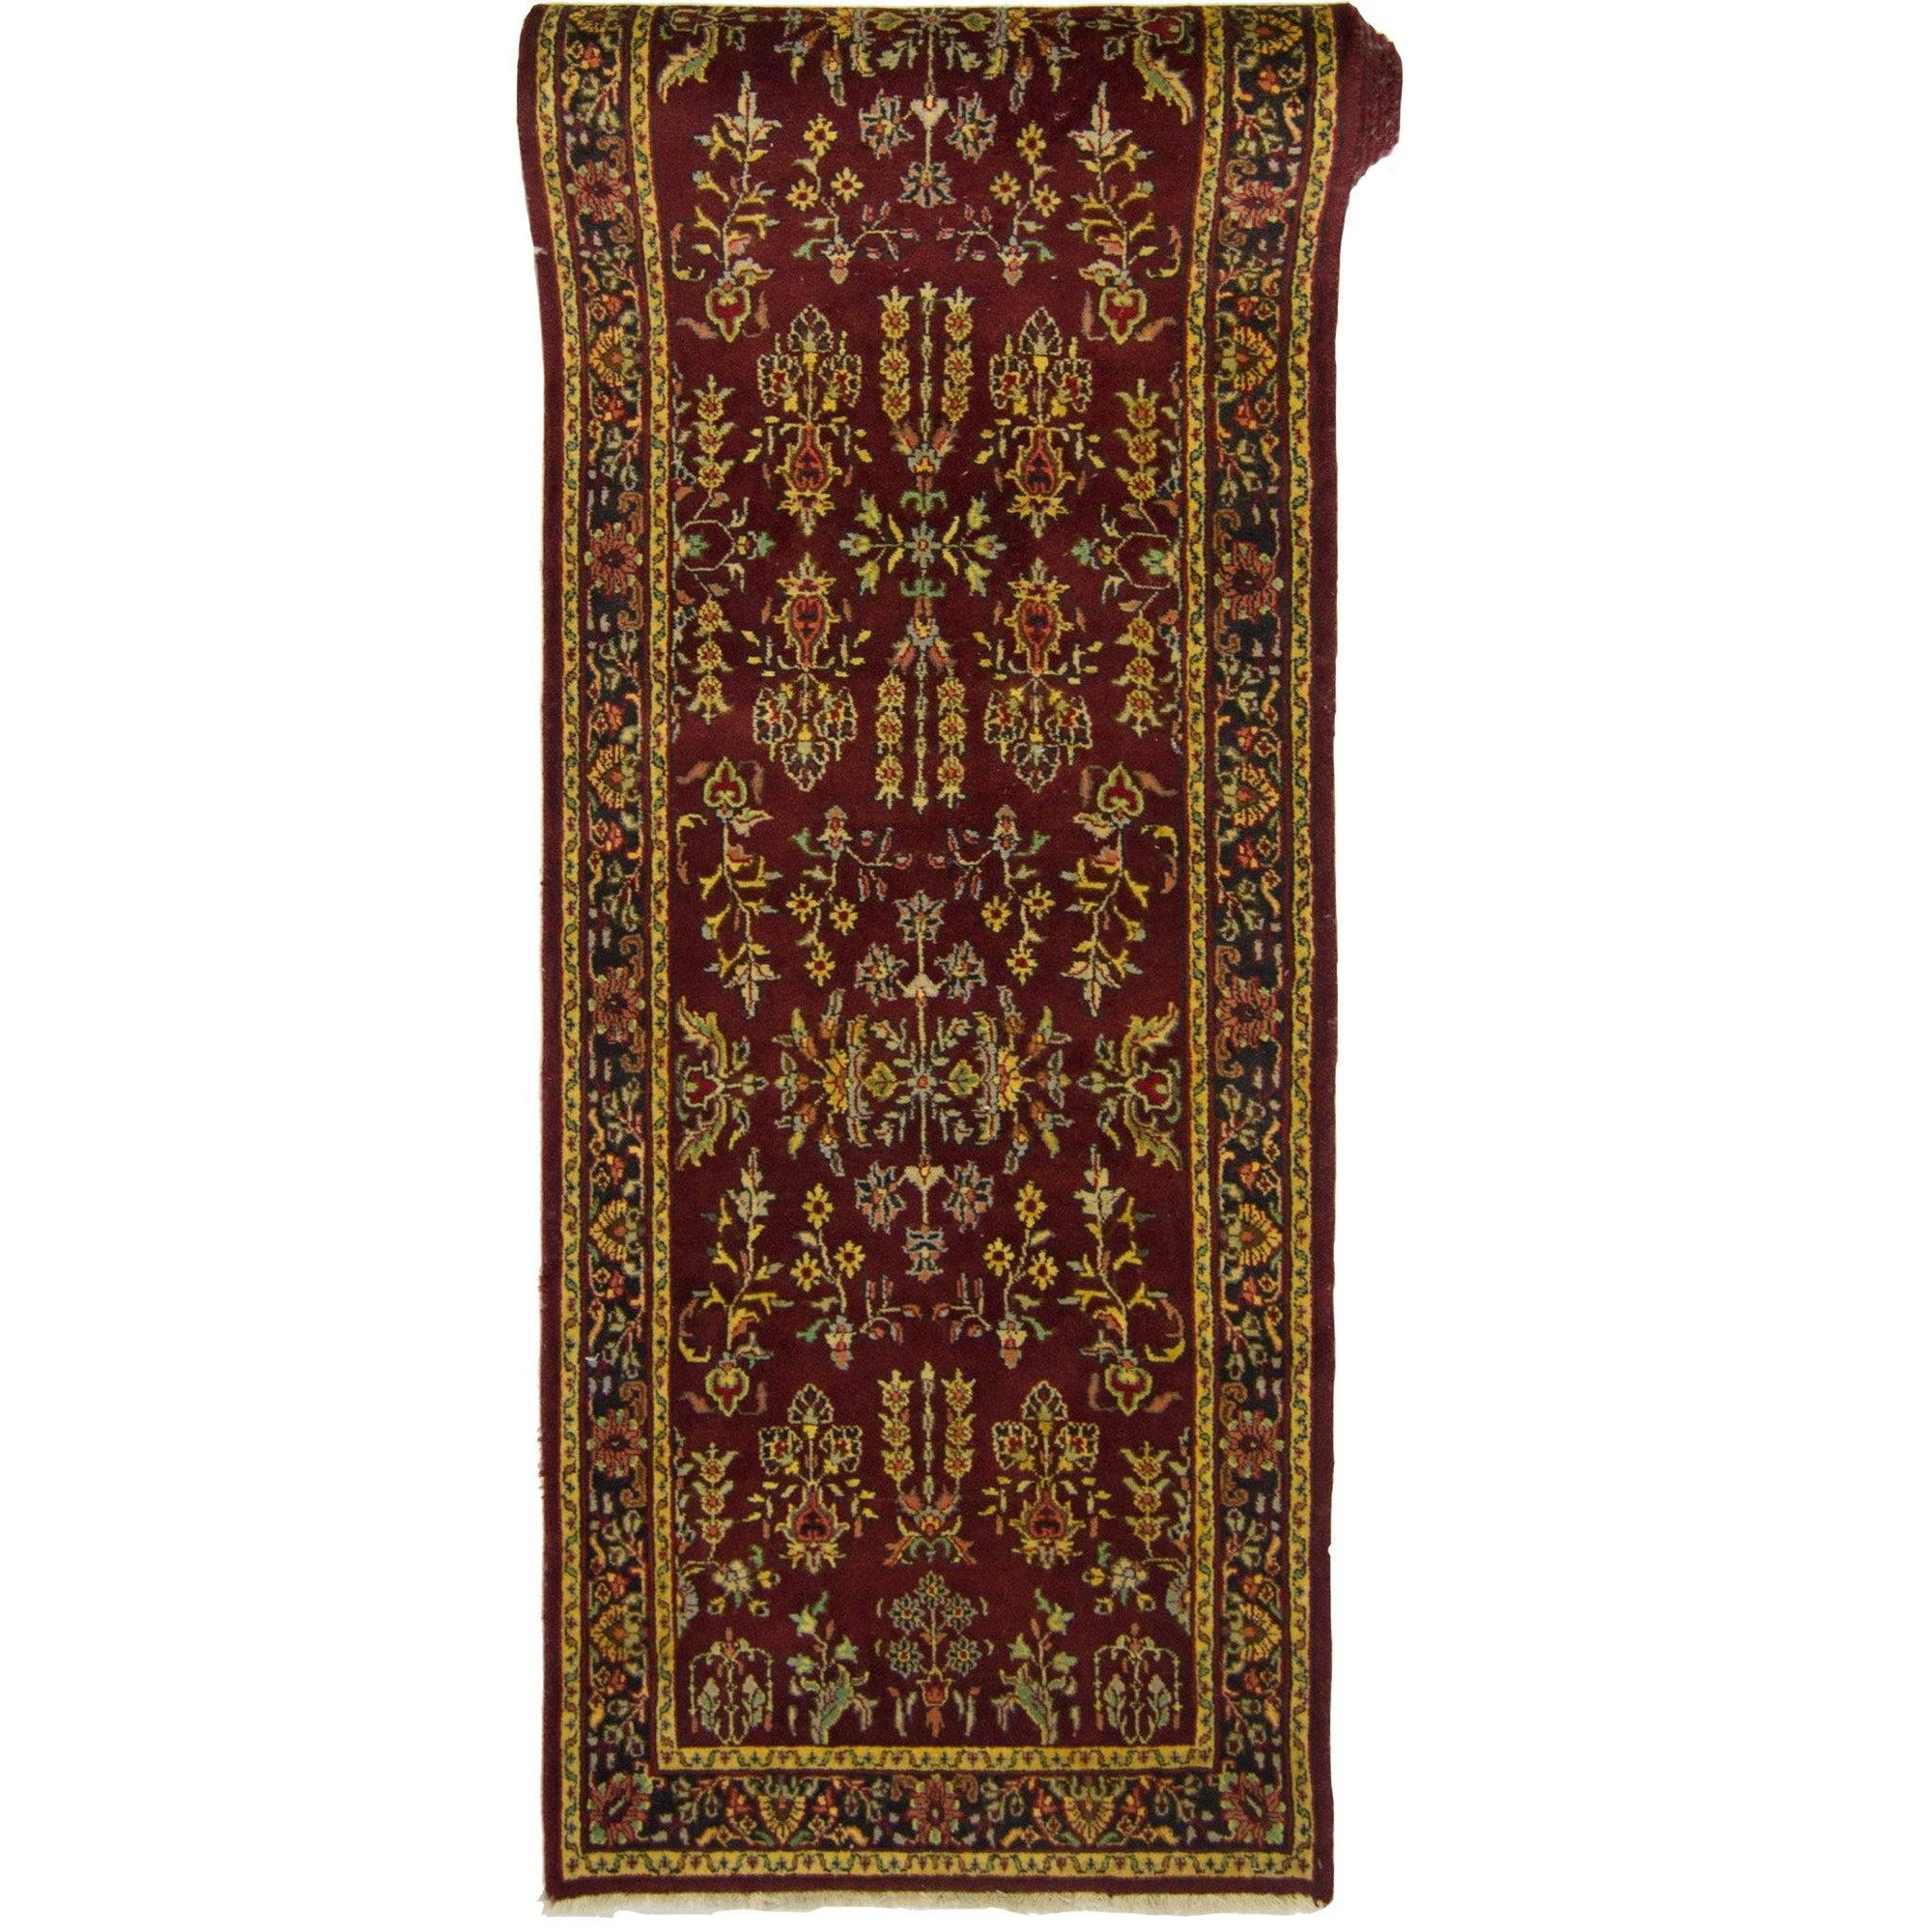 Fine Hand-knotted Persian Runner 76cm x 373cm Persian-Rug | House-of-Haghi | NewMarket | Auckland | NZ | Handmade Persian Rugs | Hand Knotted Persian Rugs